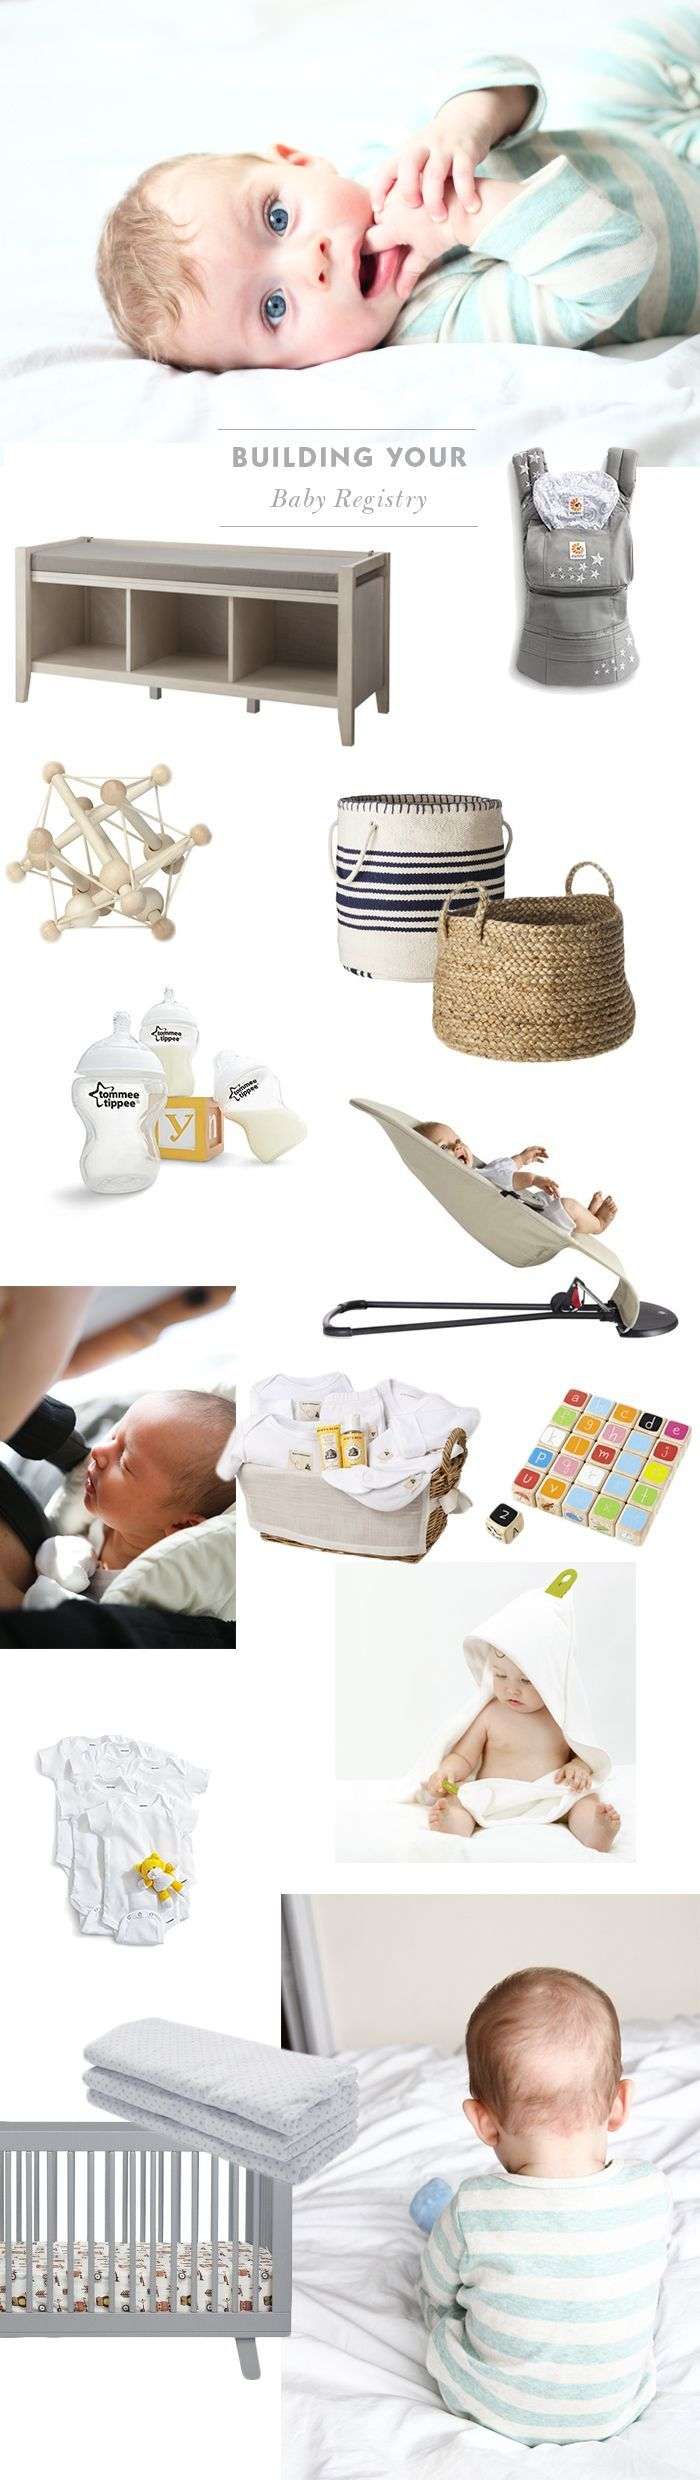 Build the perfect baby registry with this helpful list of baby must-haves.